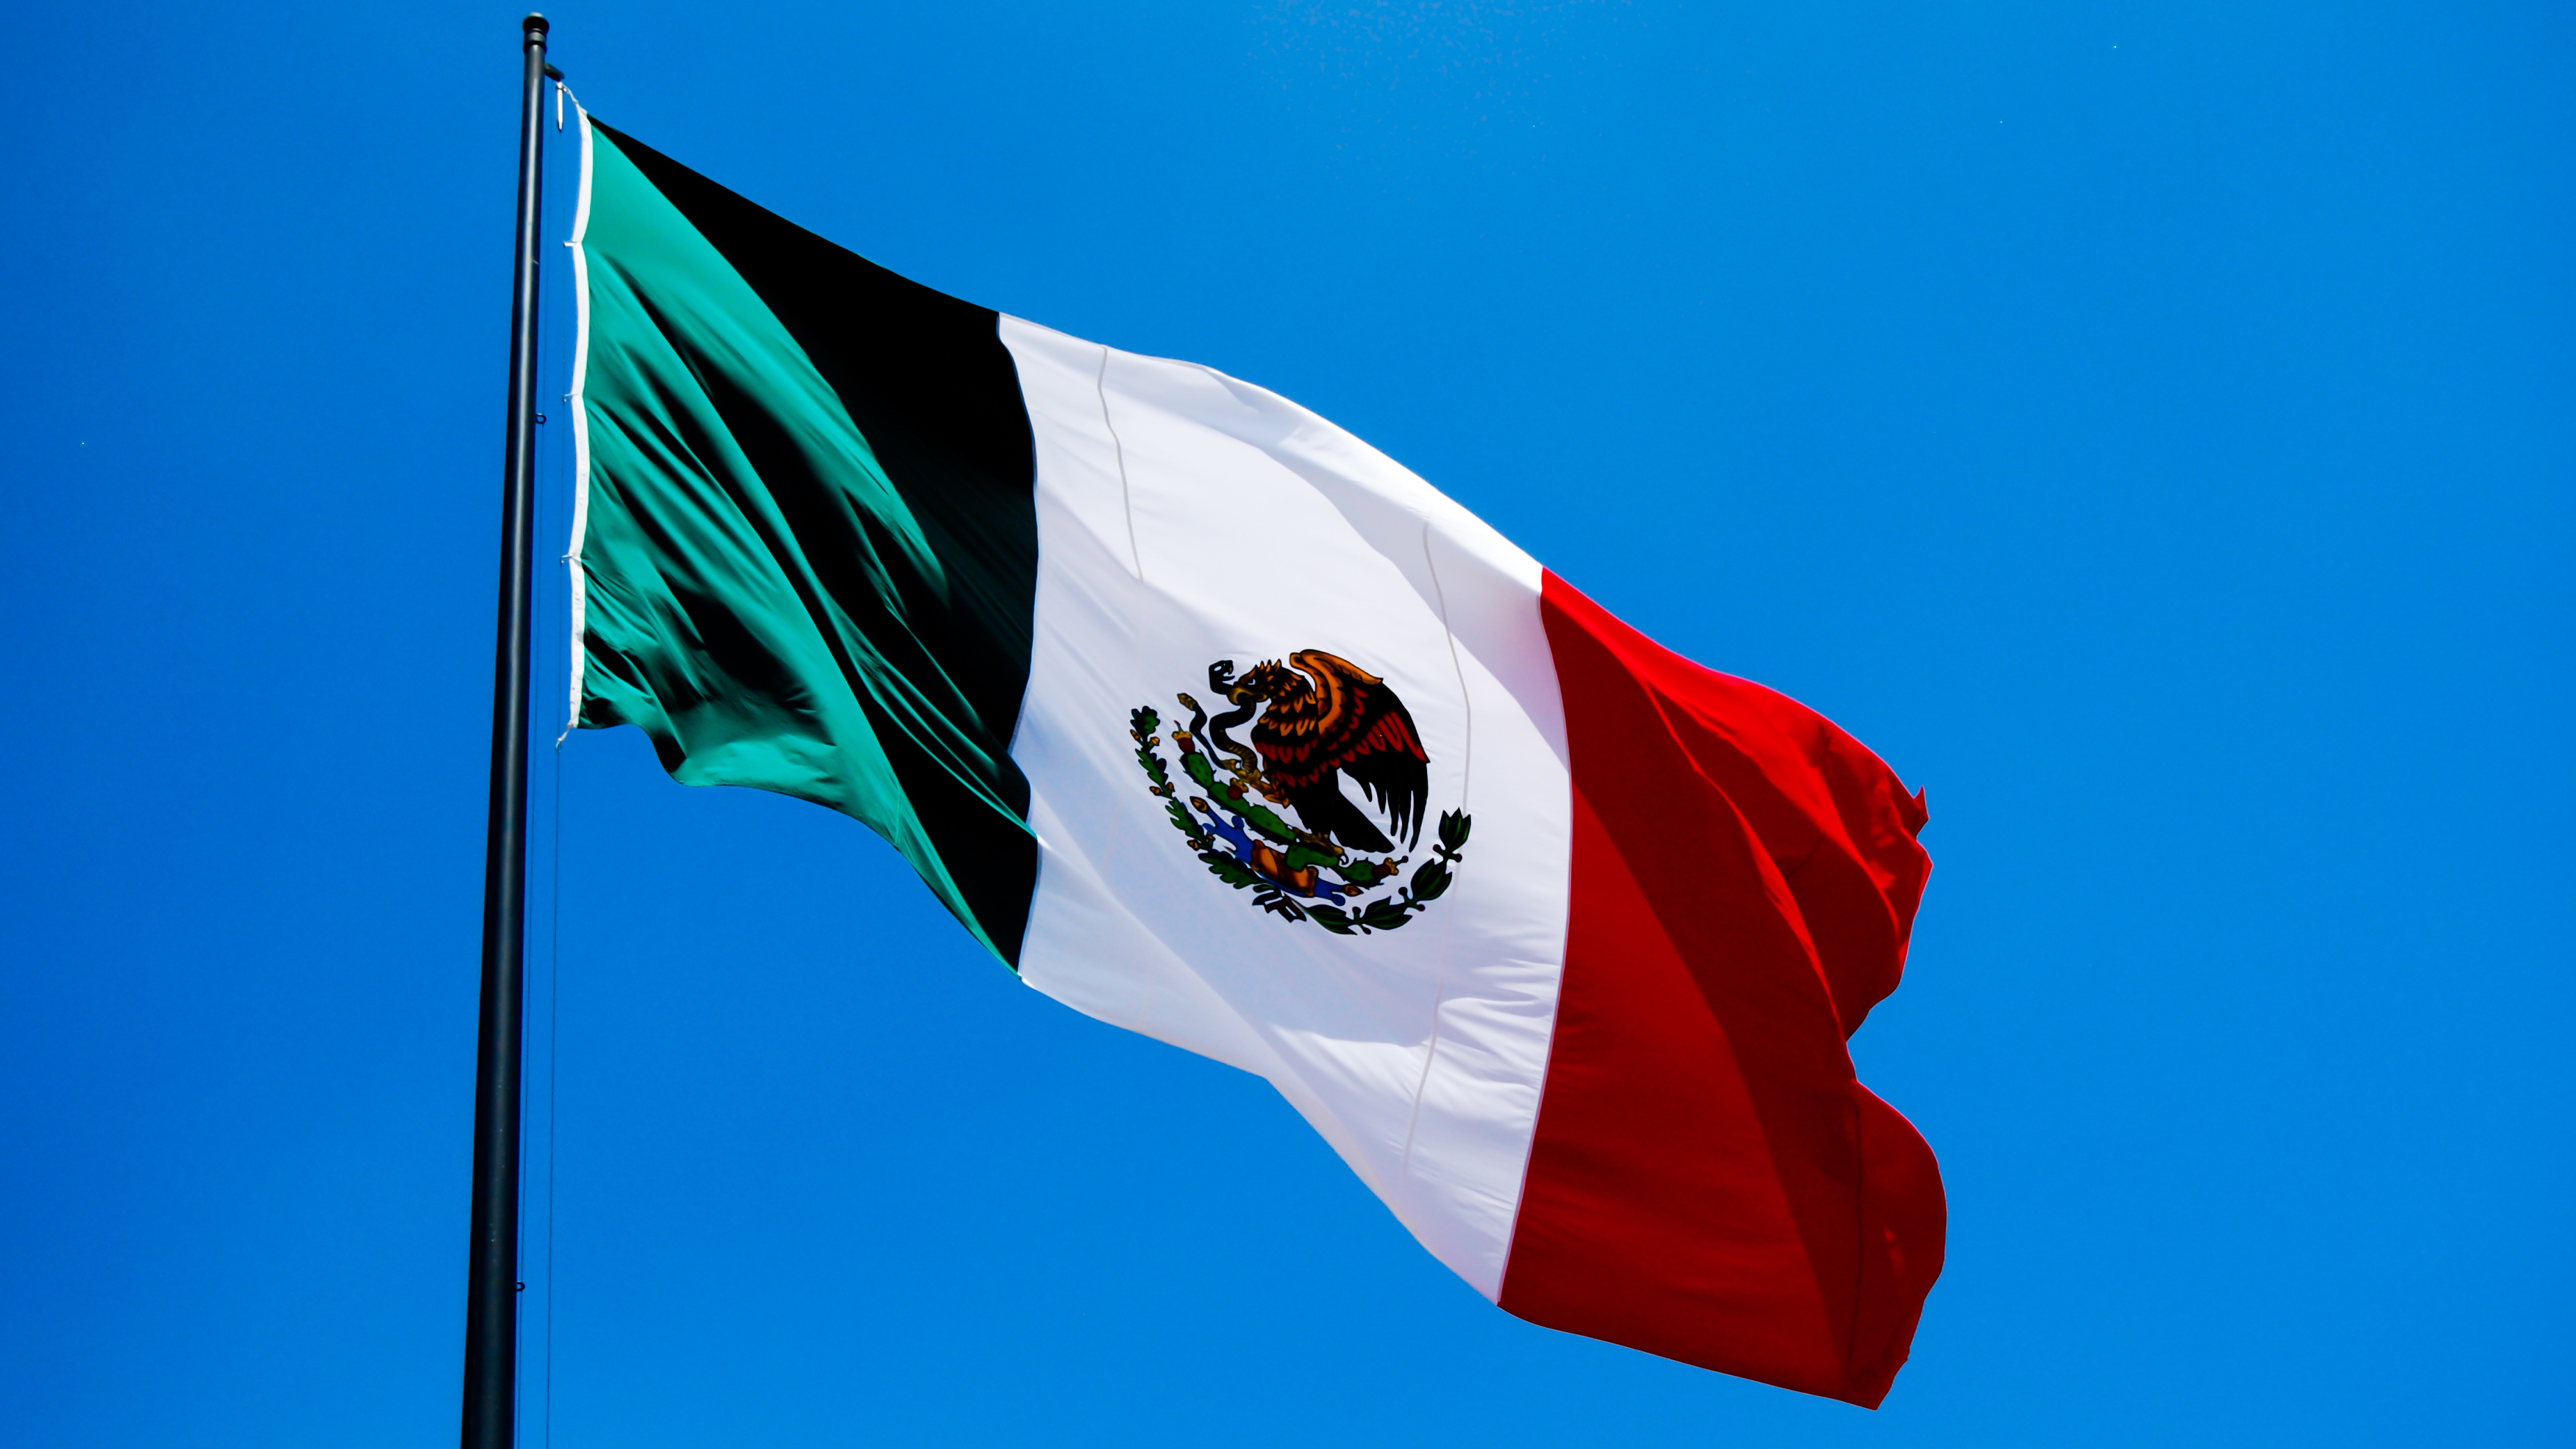 Mexico: the aftermath of tragedy